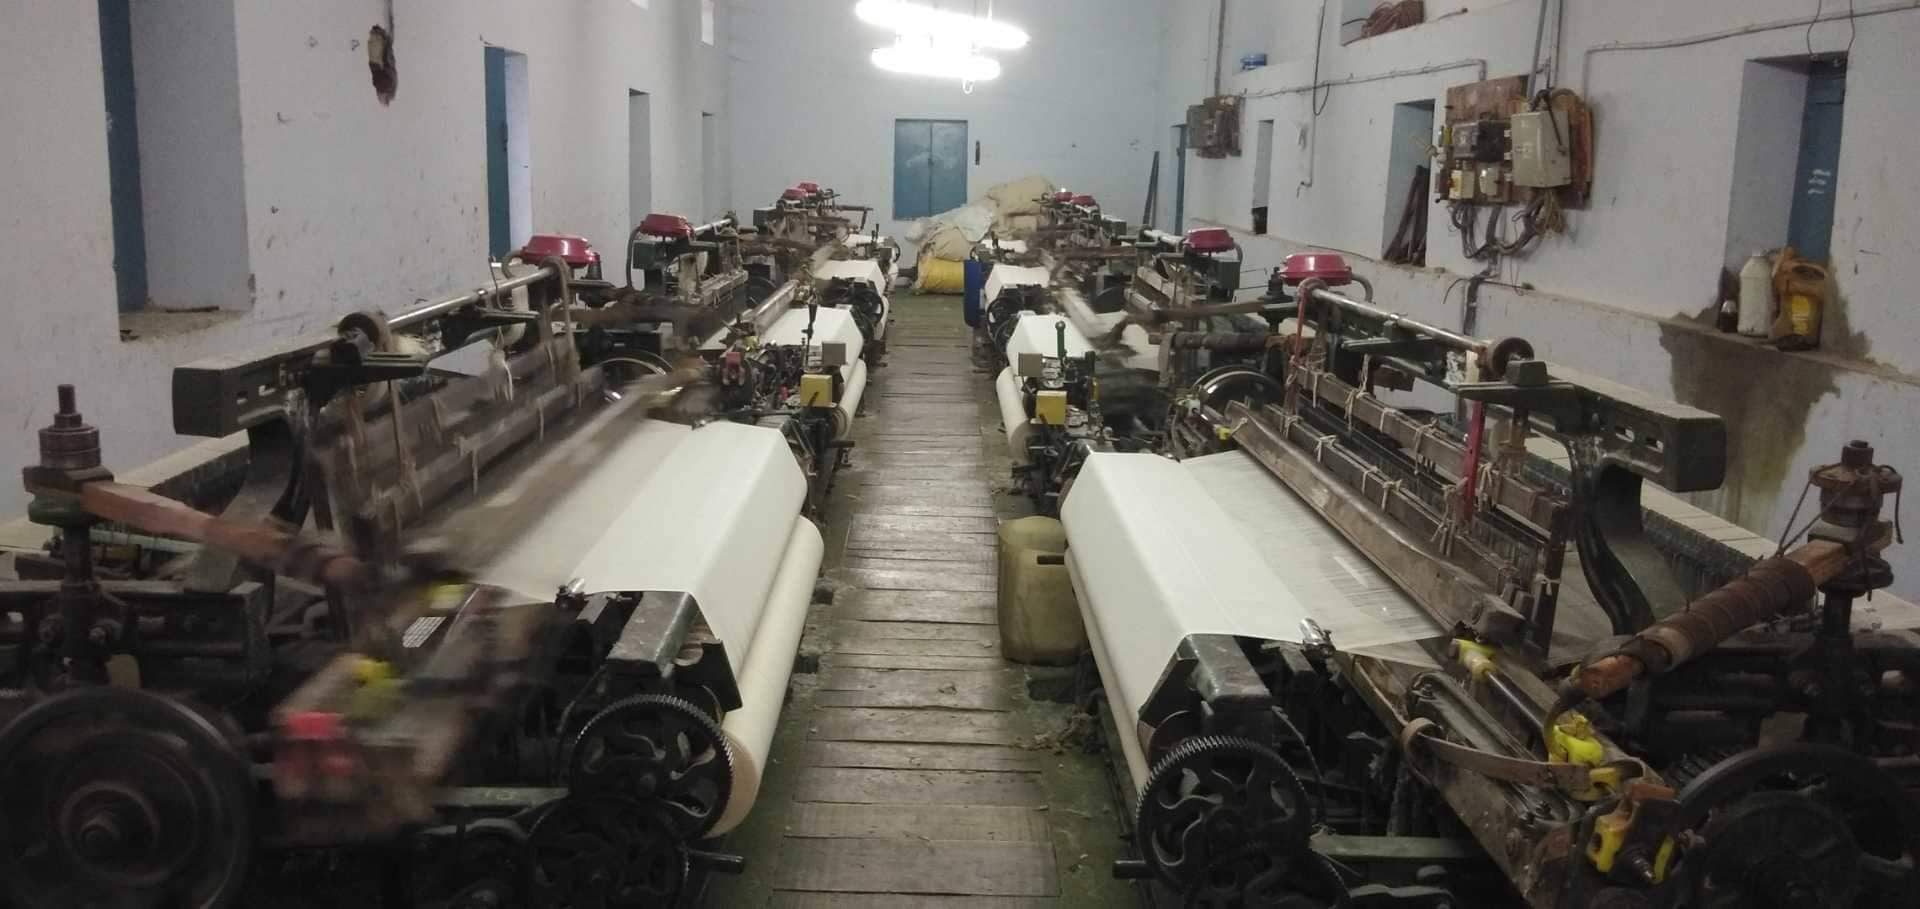 Top 100 Textile Manufacturers in Erode - Best Clothes Manufacturers